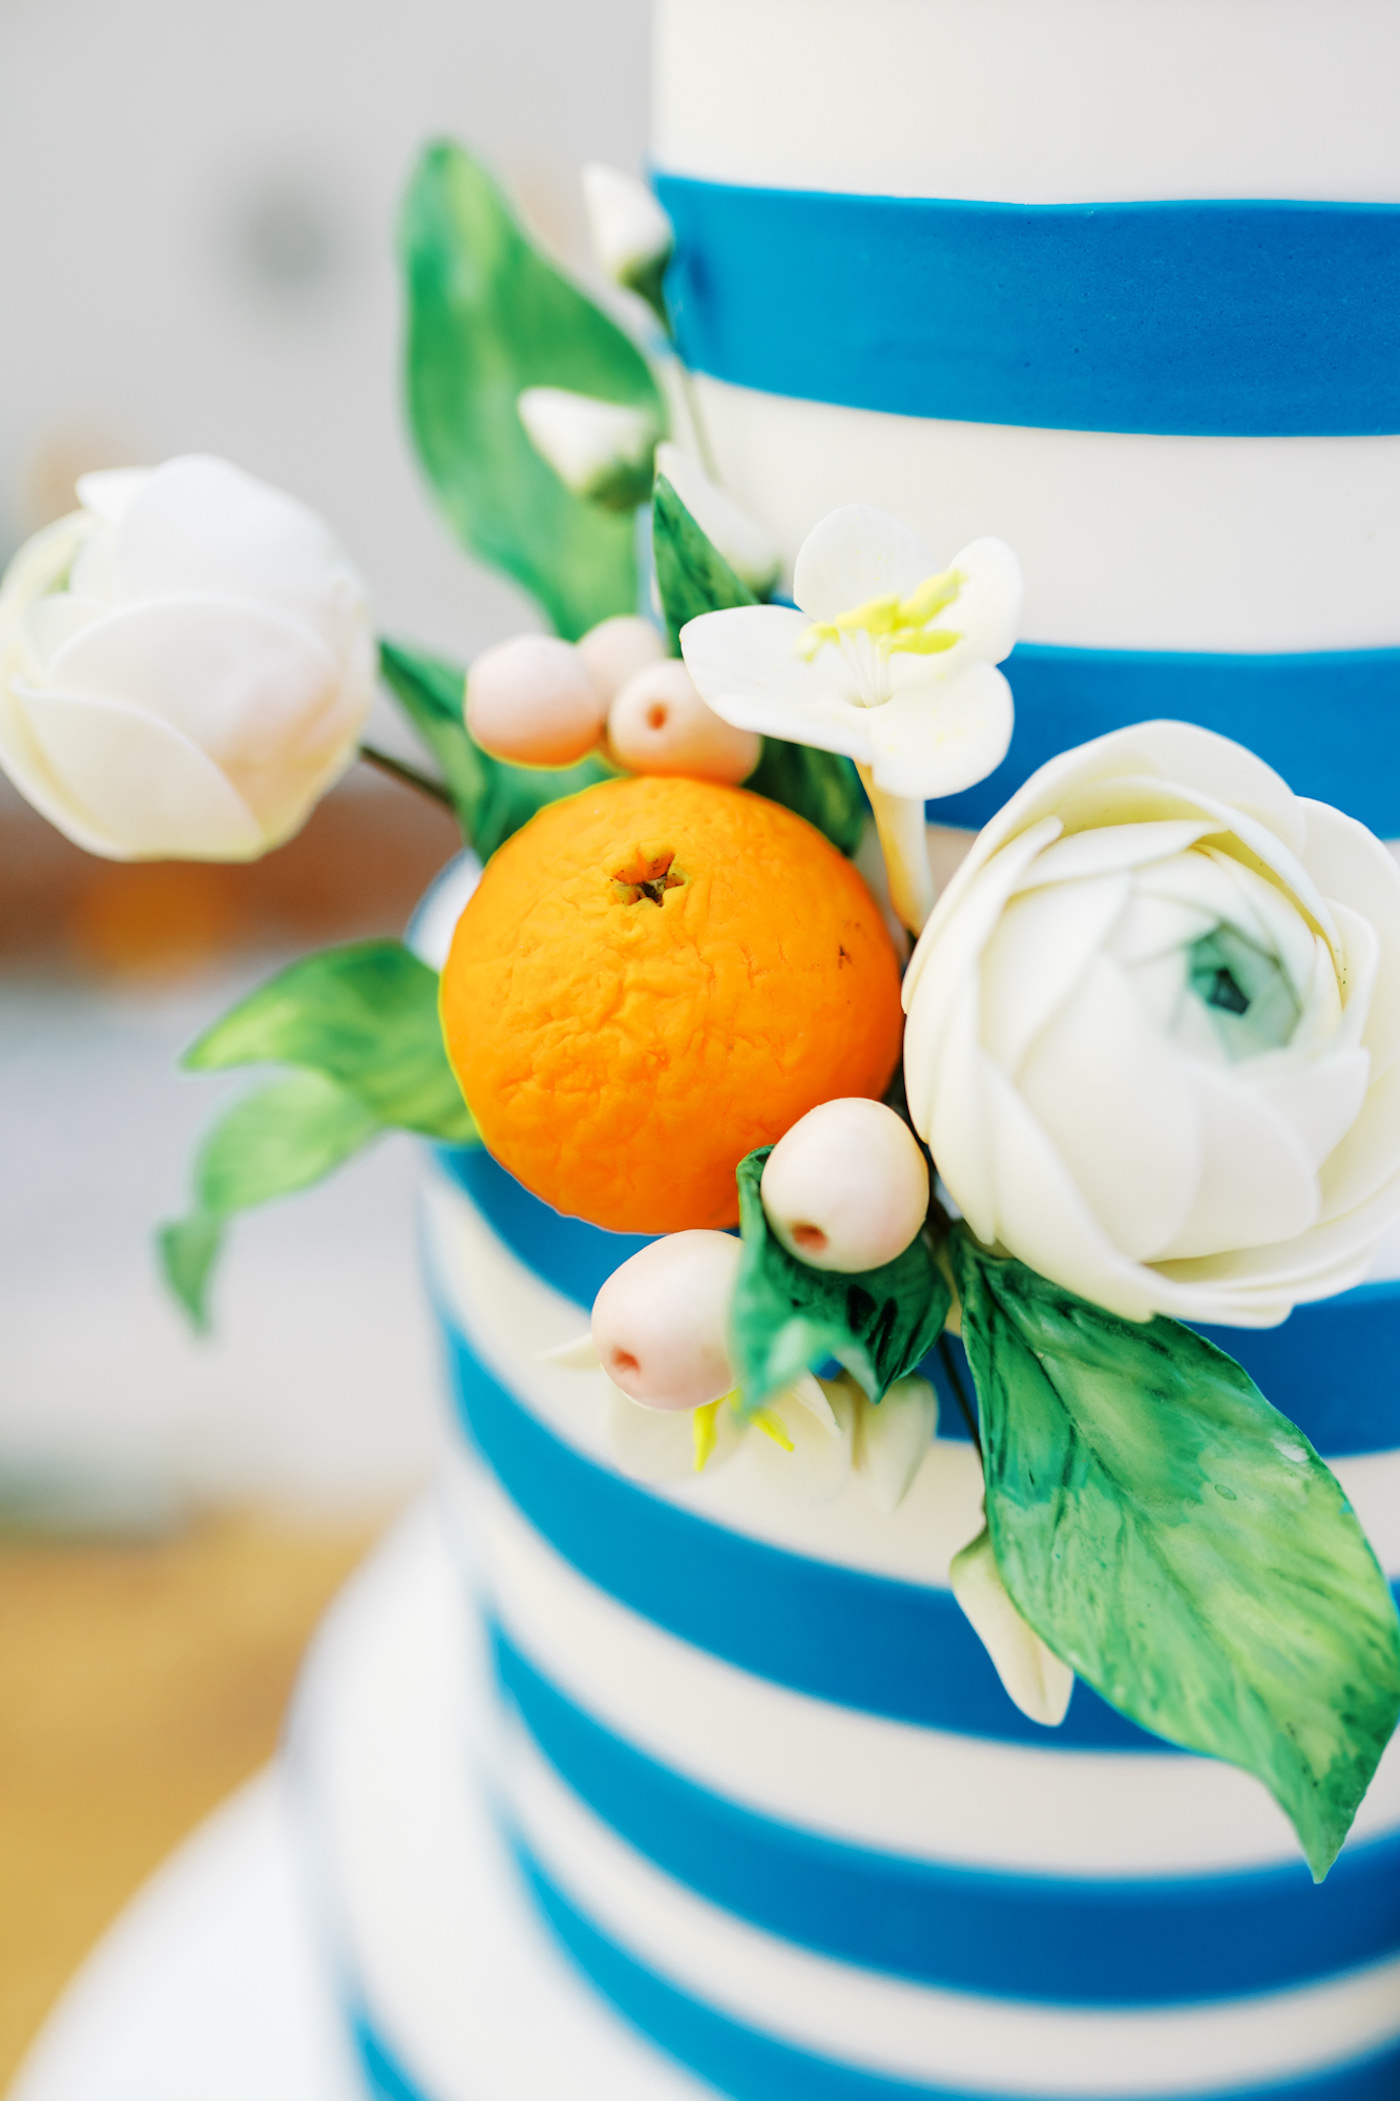 Wood Farm Table Wedding Cake Display | Three Tier Blue and White Stripe Wedding Cake with Fresh Citrus by Tampa Bay Cake Company Bakery | Tropical Florida Citrus Wedding Inspiration